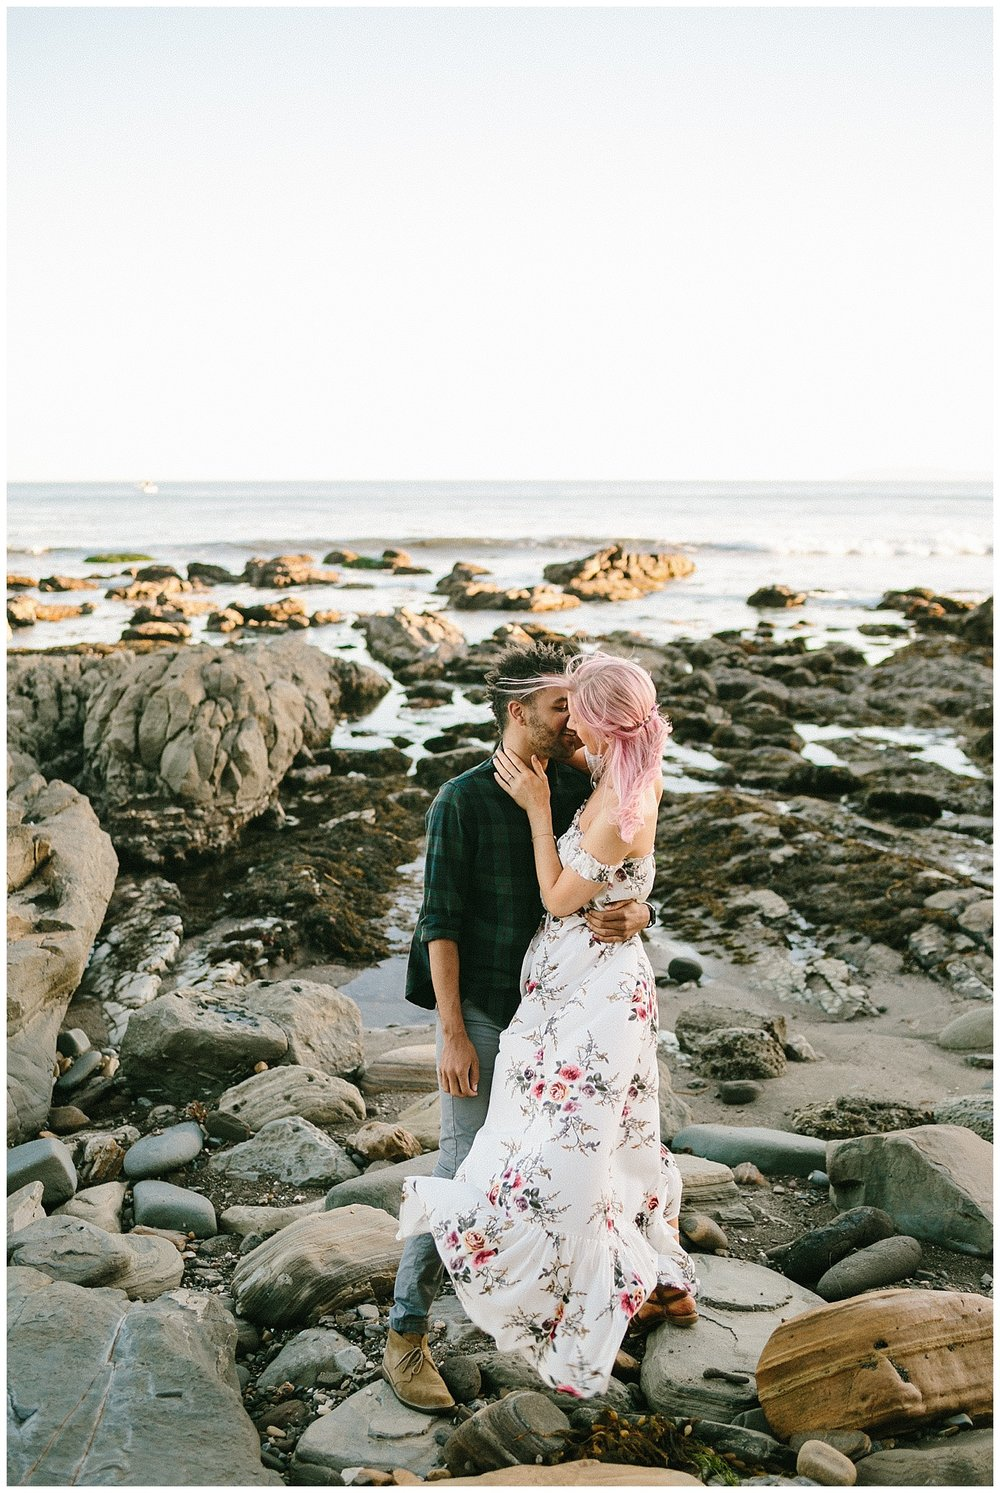 beach+southern+california+engagements+love+lifestyle+utah+colorado+california+washington+oregon+montana+wedding+photographer+photography+dayna+grace_0188.jpg